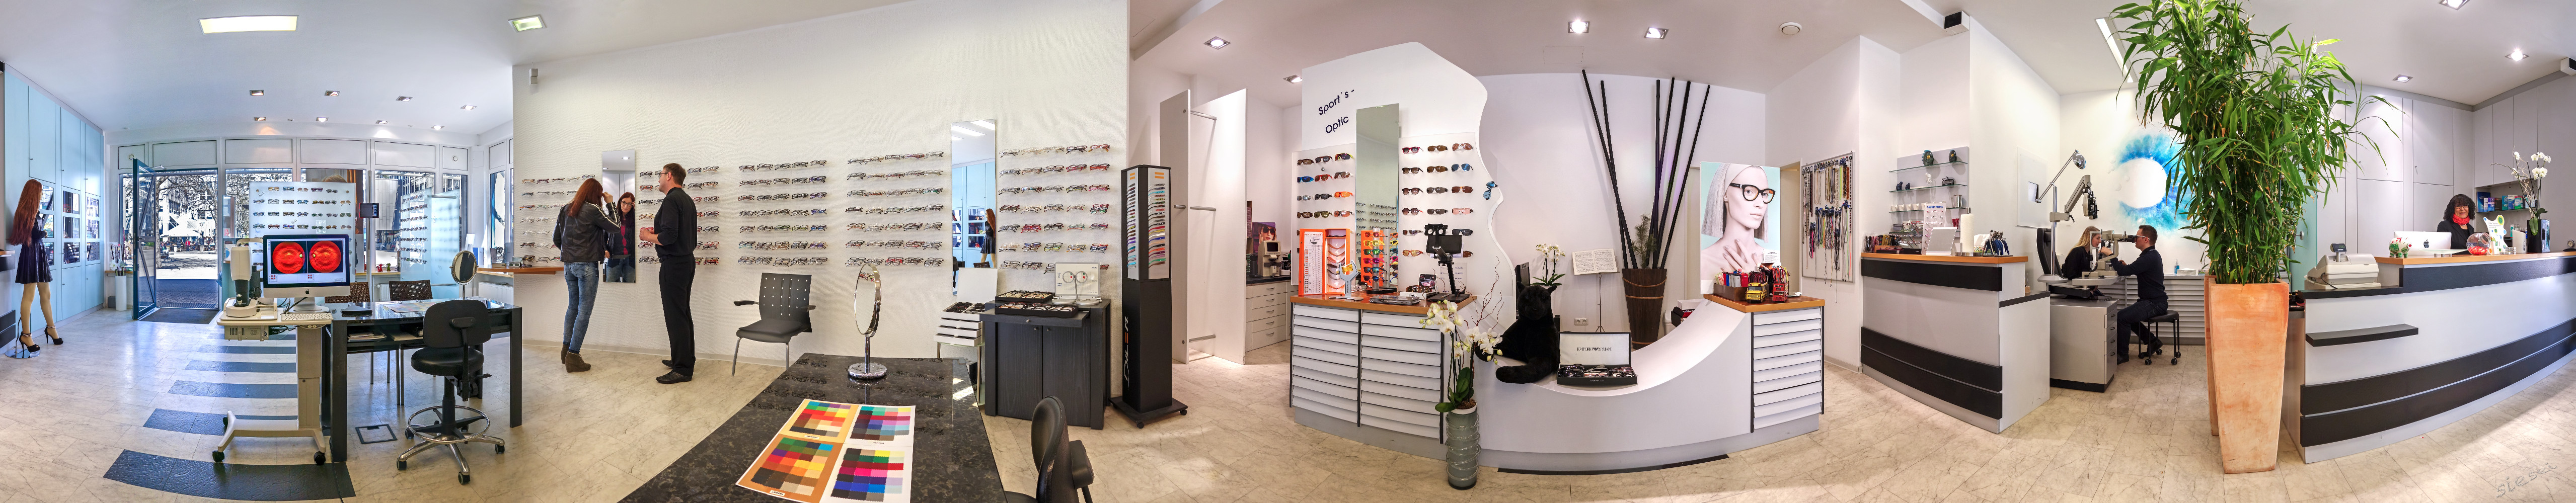 Inside arabella optic g